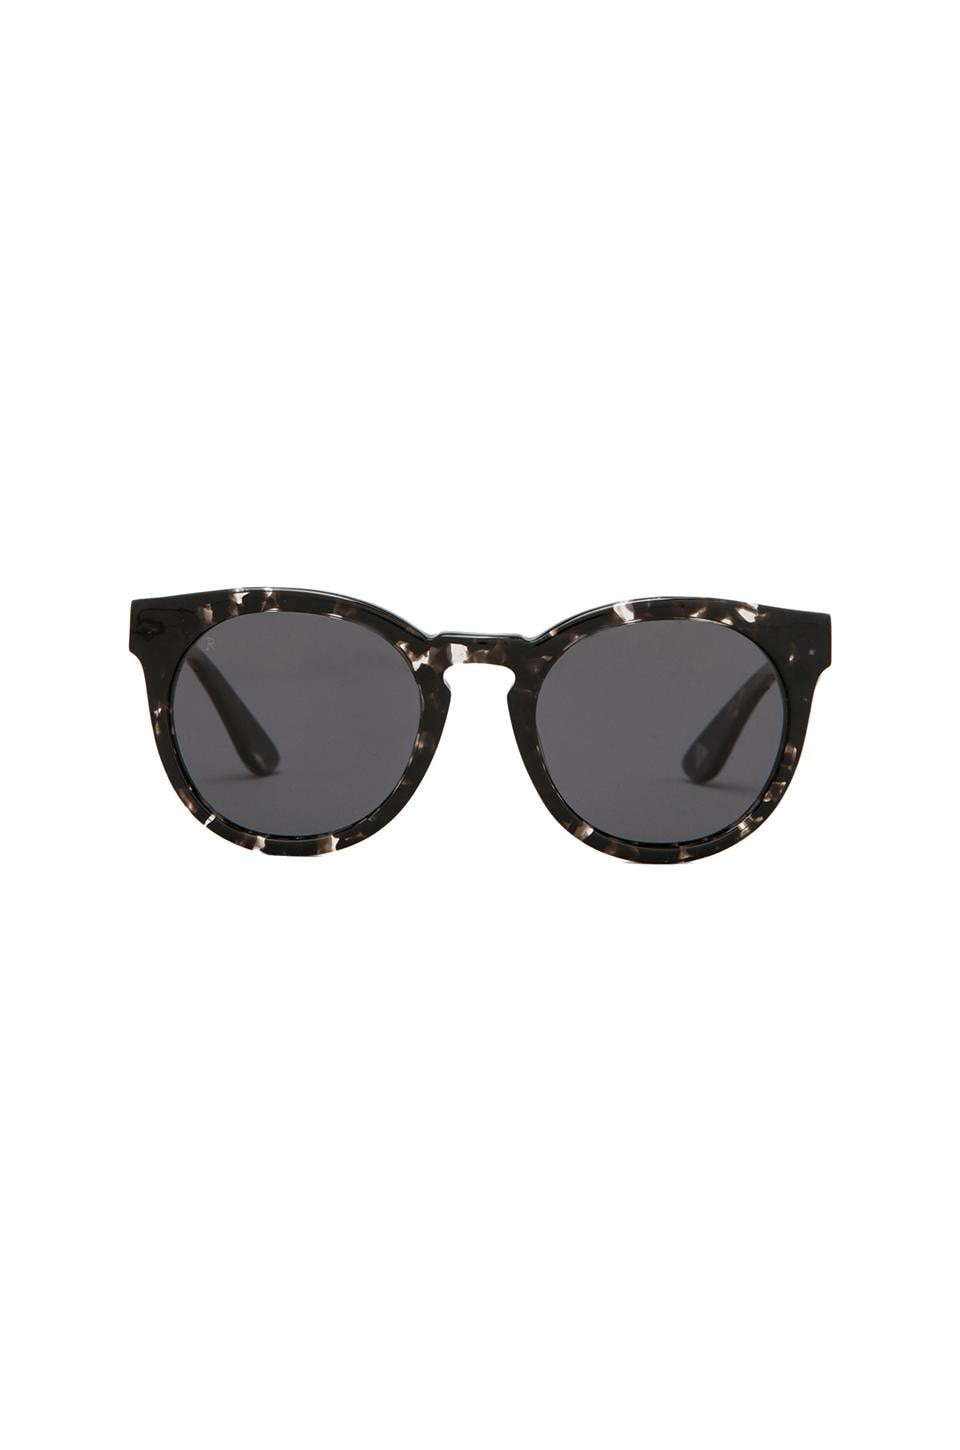 RAEN optics Poler Collection in Black Polarzied